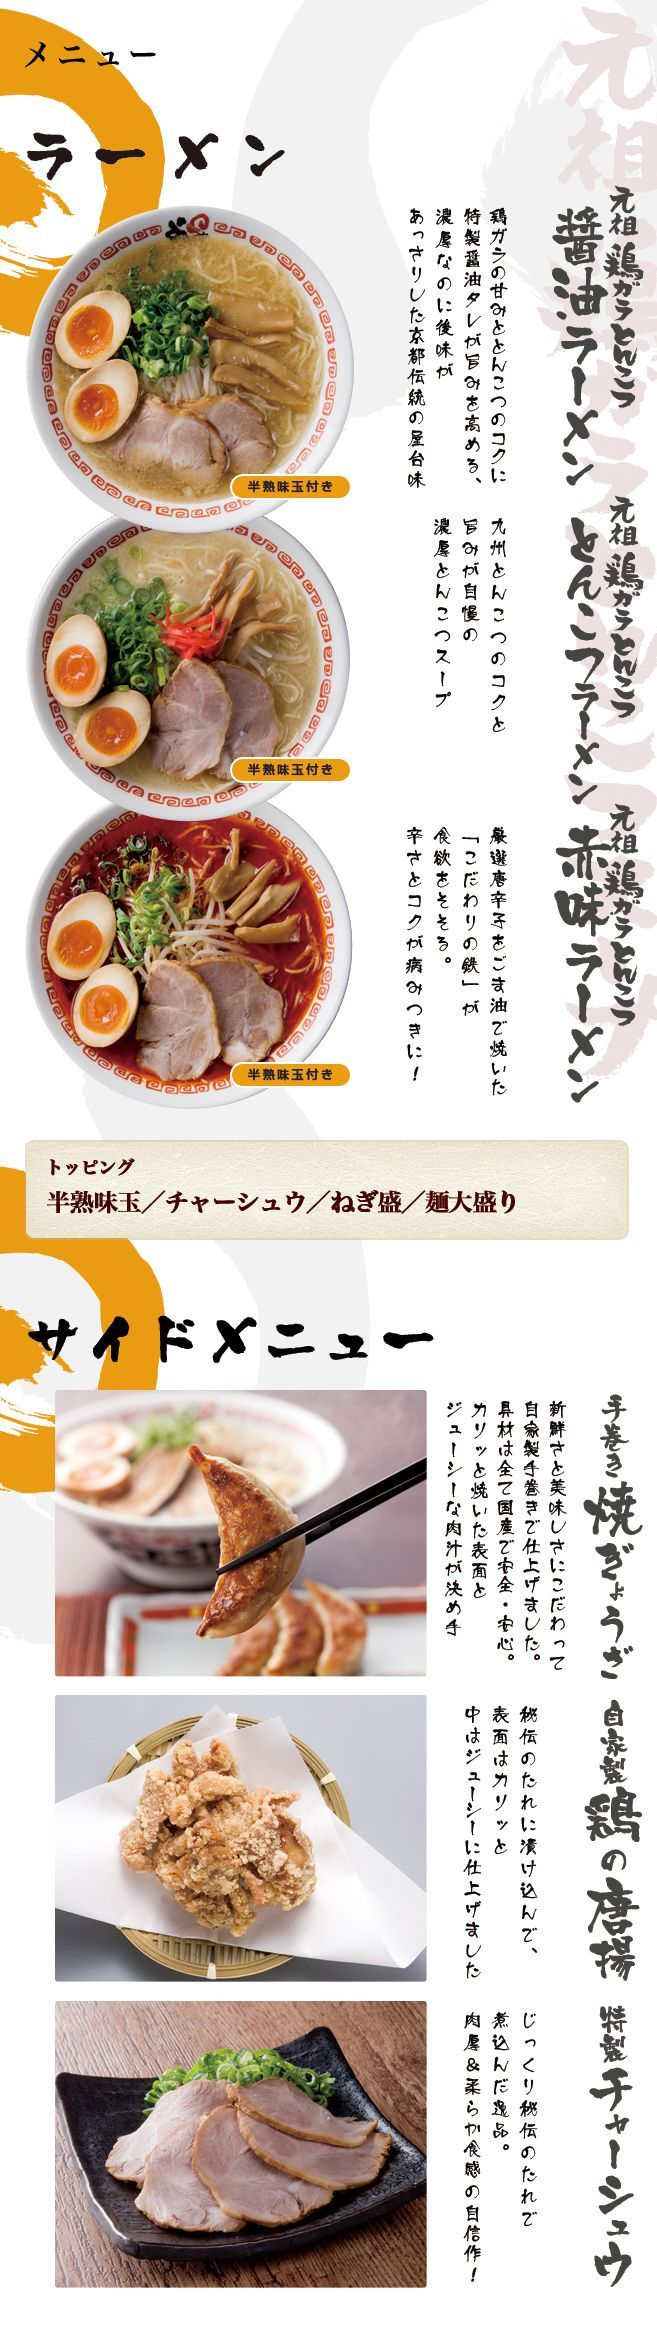 26 best shabu images on Pinterest | Food posters, Menu layout and ...